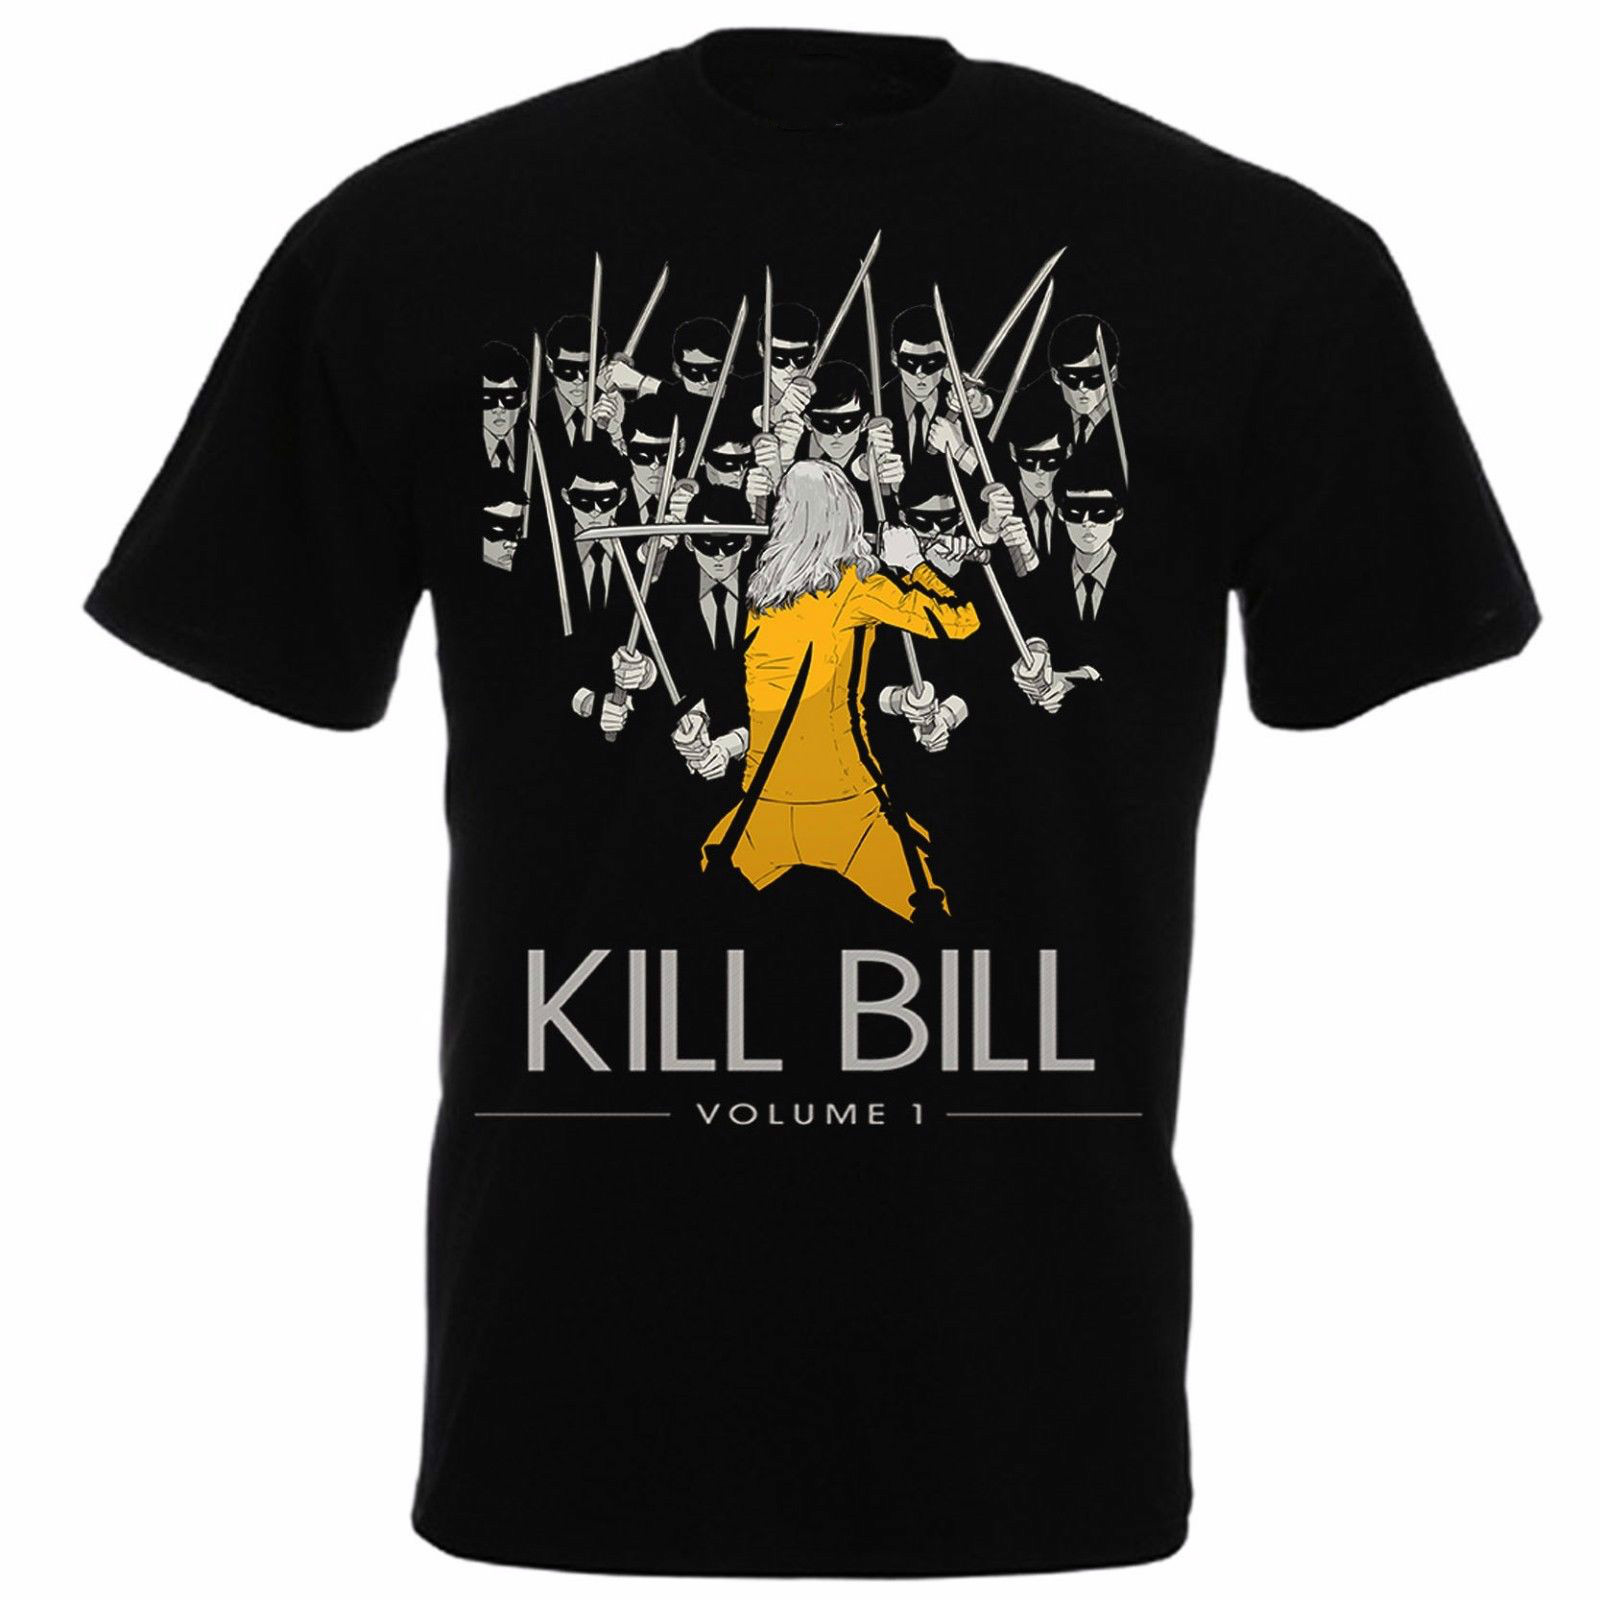 kill-bill-vol-1-by-quentin-font-b-tarantino-b-font-uma-thurman-as-black-mamba-movie-t-shirt-men's-o-neck-printed-tee-shirt